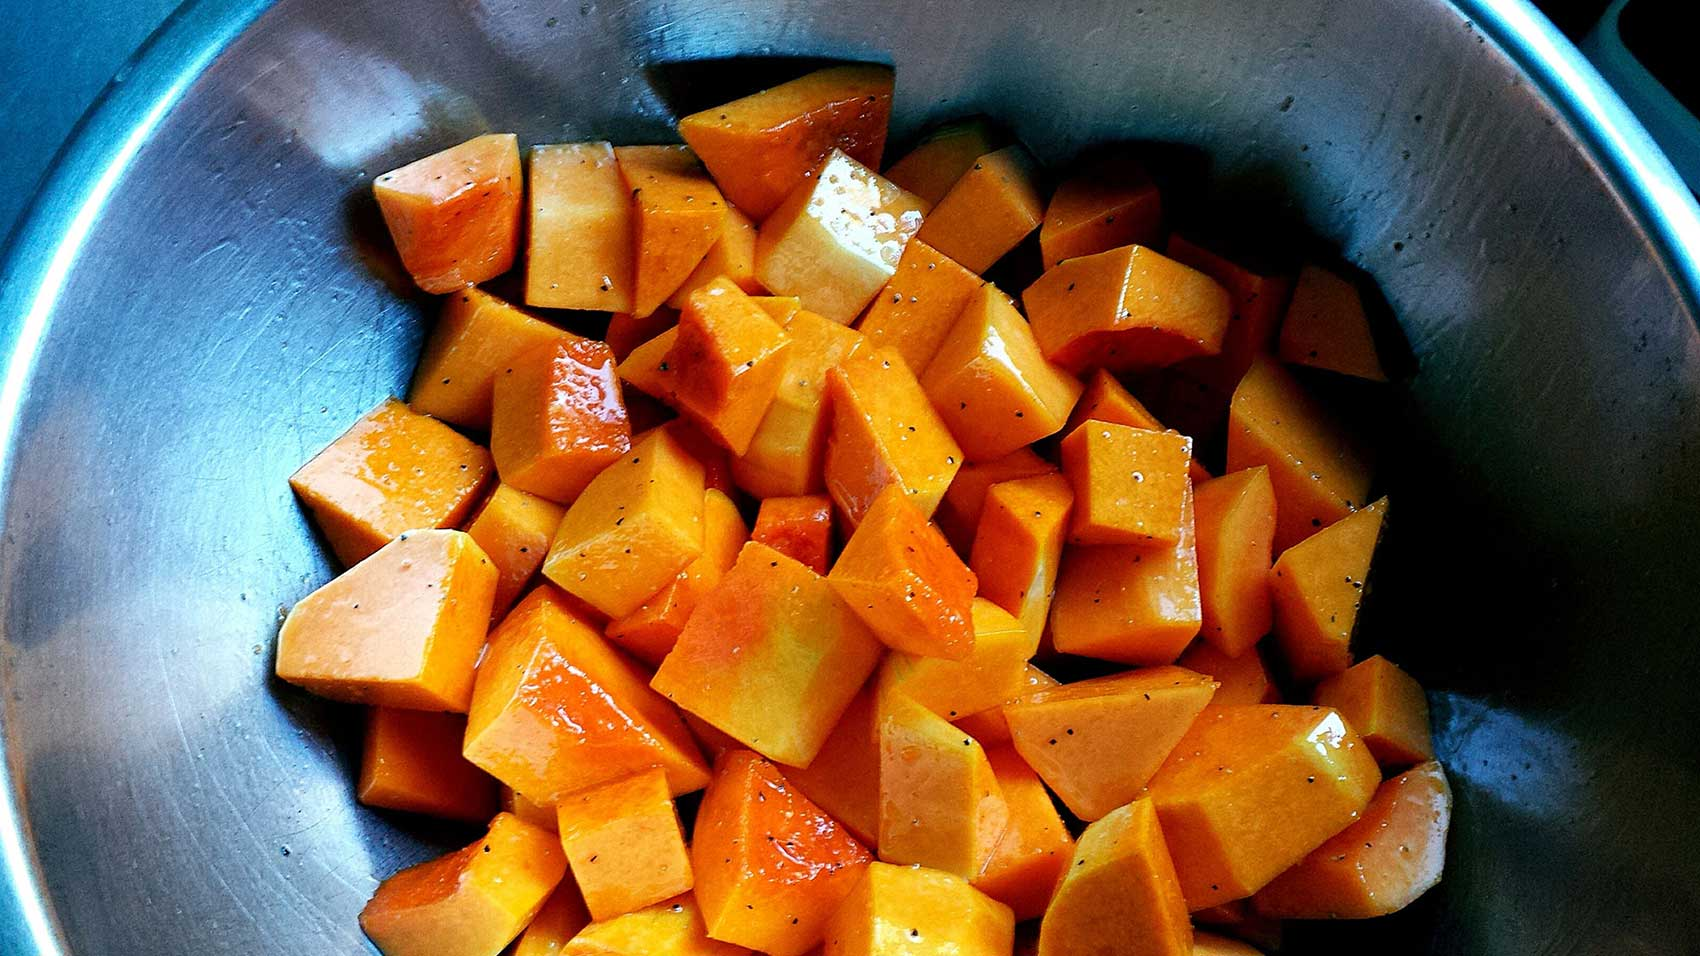 Butternut squash cut up for cooking